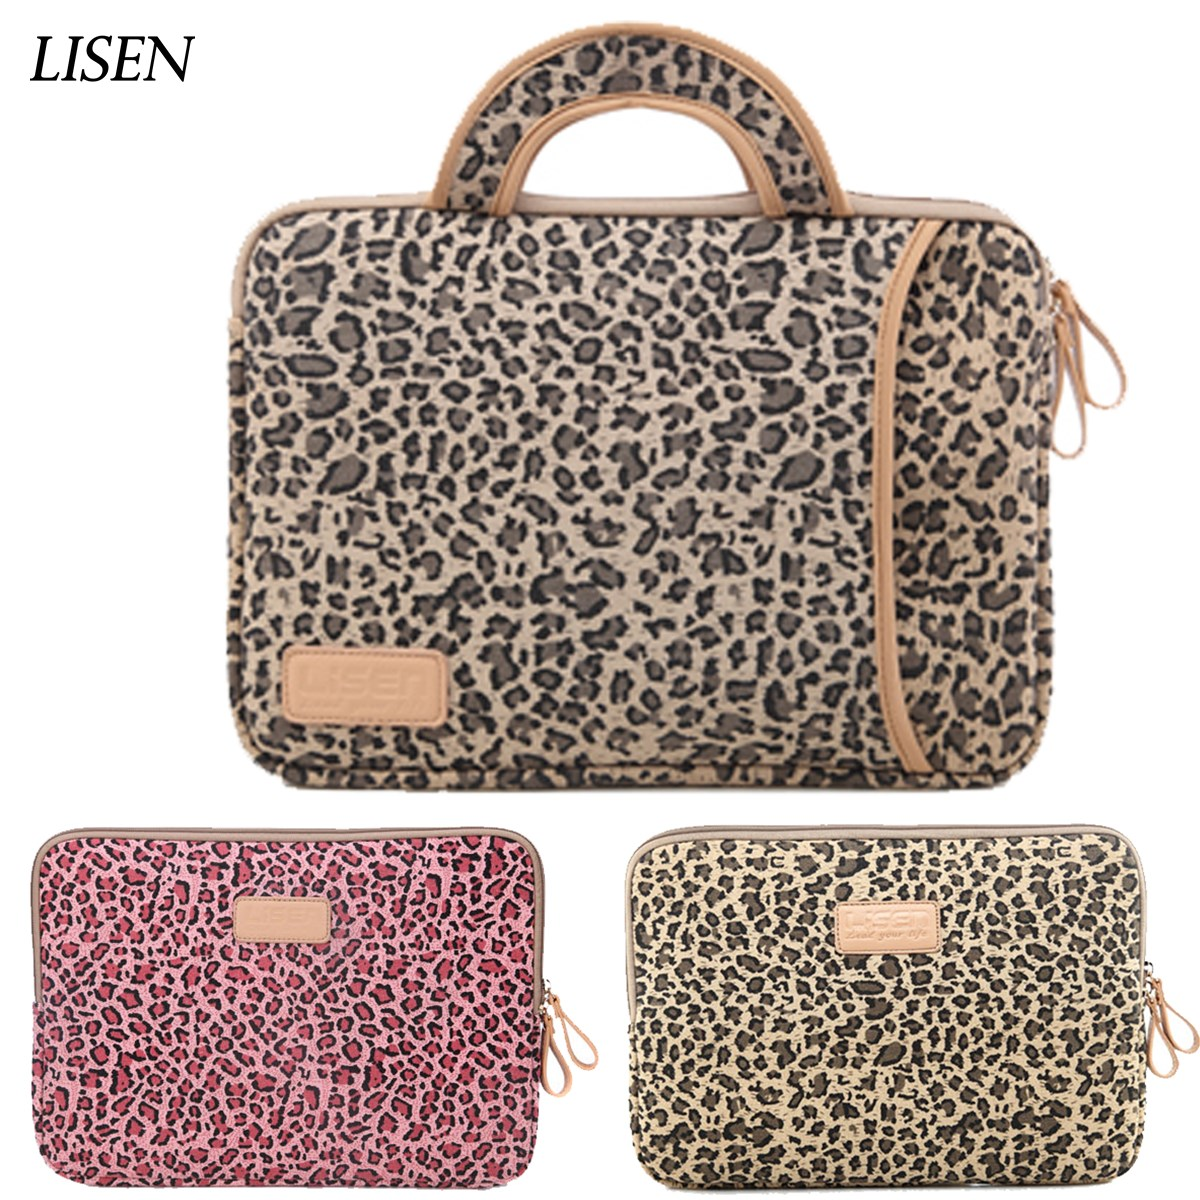 2018 new arrival leopard Laptop Bag Sleeve Case for Macbook air pro 11 13 14 15 for ipad 7.9 9.7 Cover Women Notebook handbag